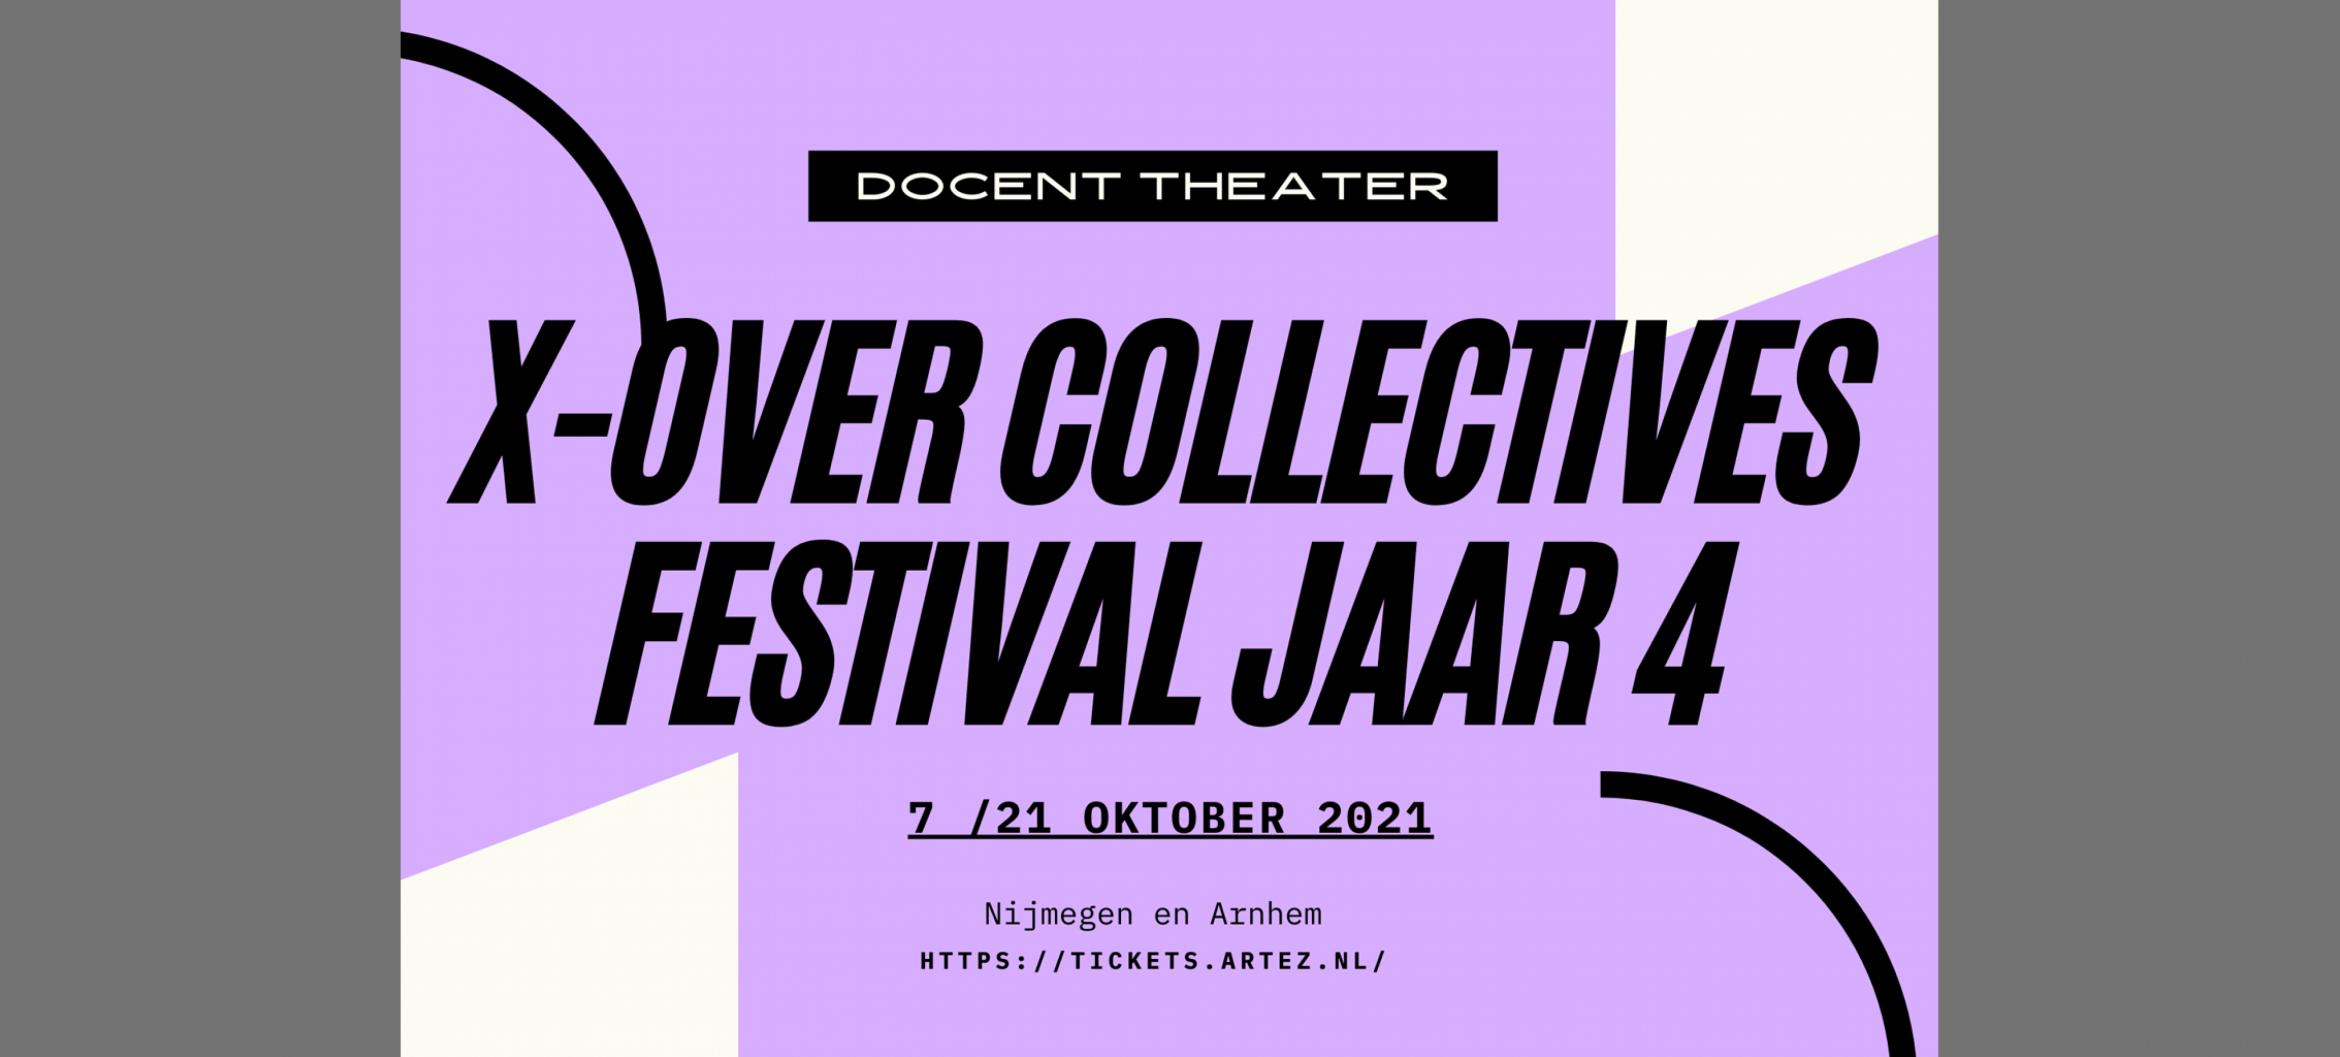 x-over collectives festival | Docent Theater Arnhem